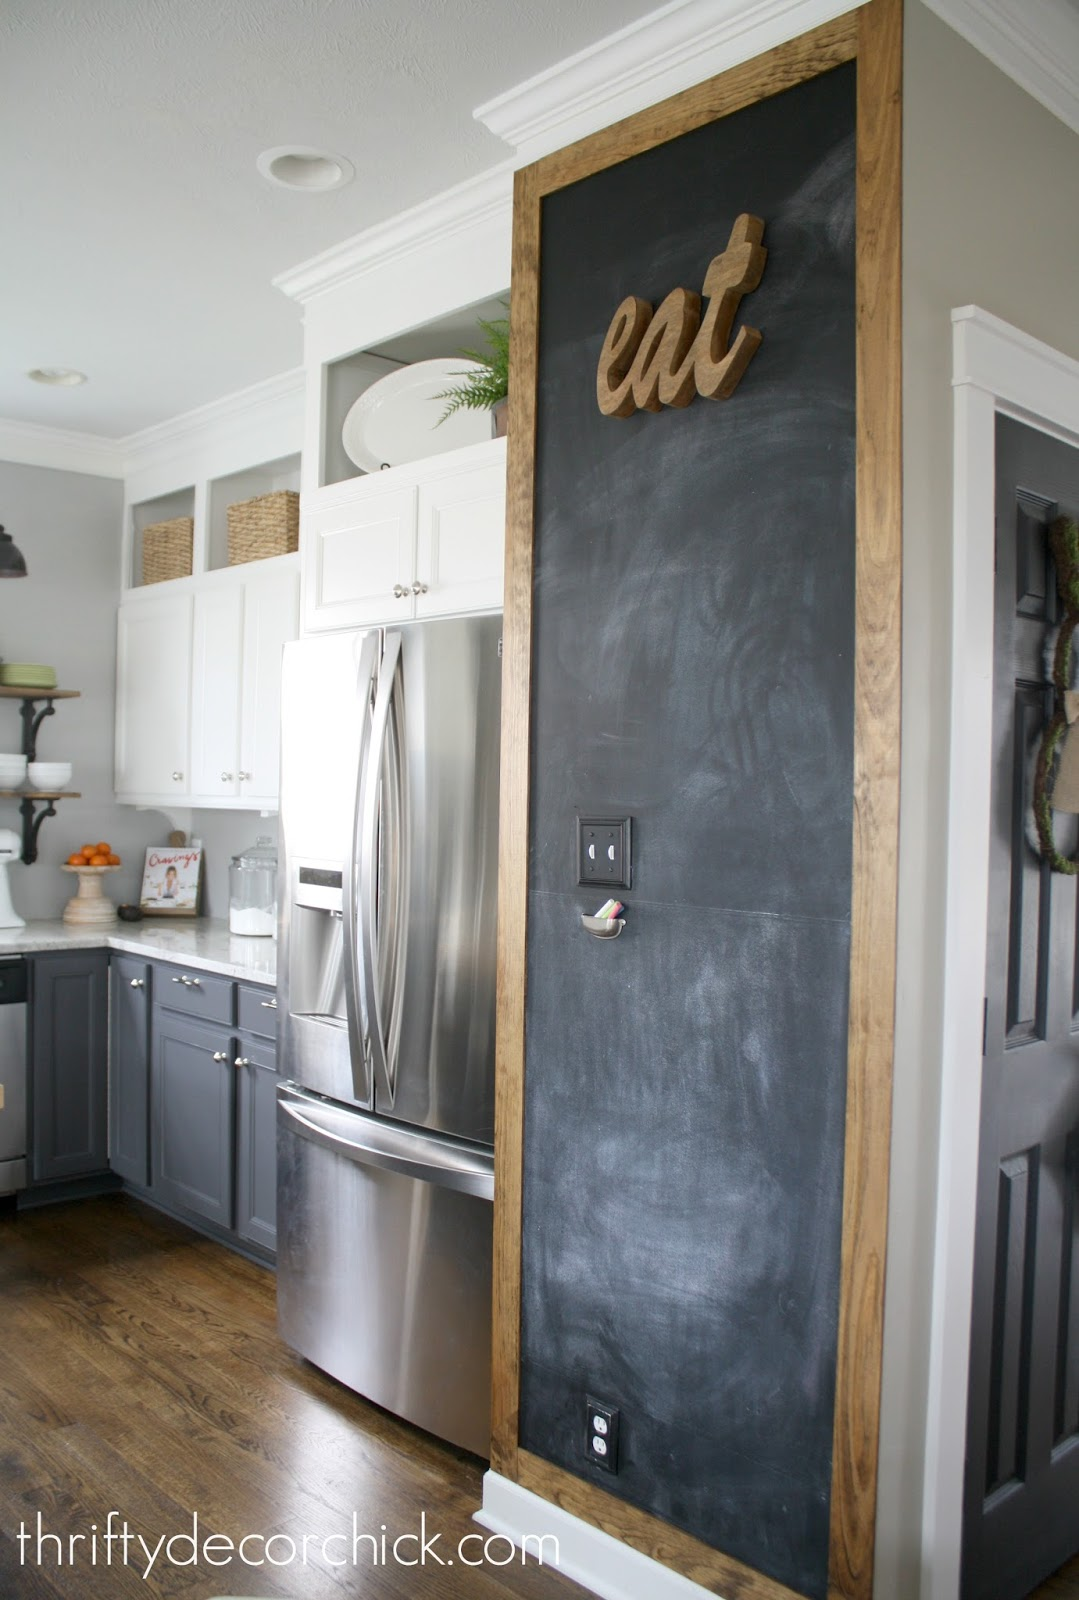 Adding some rustic charm to the kitchen from Thrifty Decor